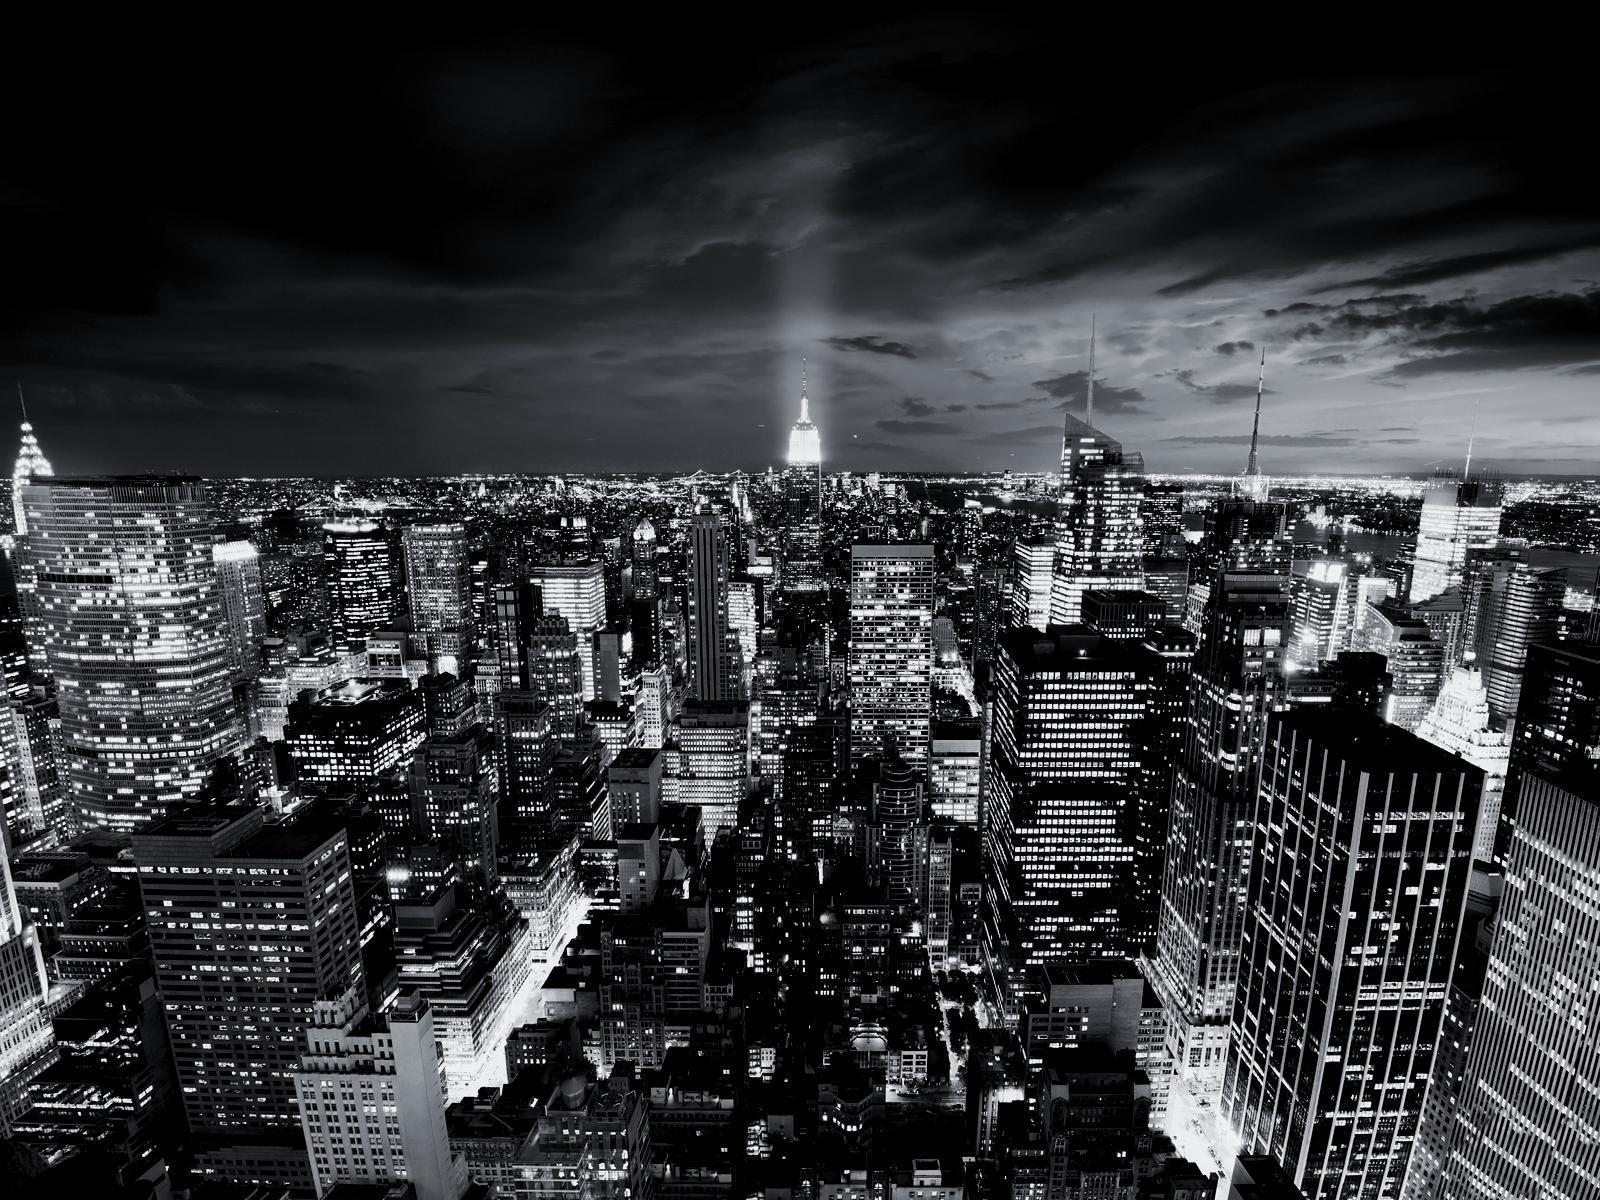 Black and White City That Never Sleeps wallpapers